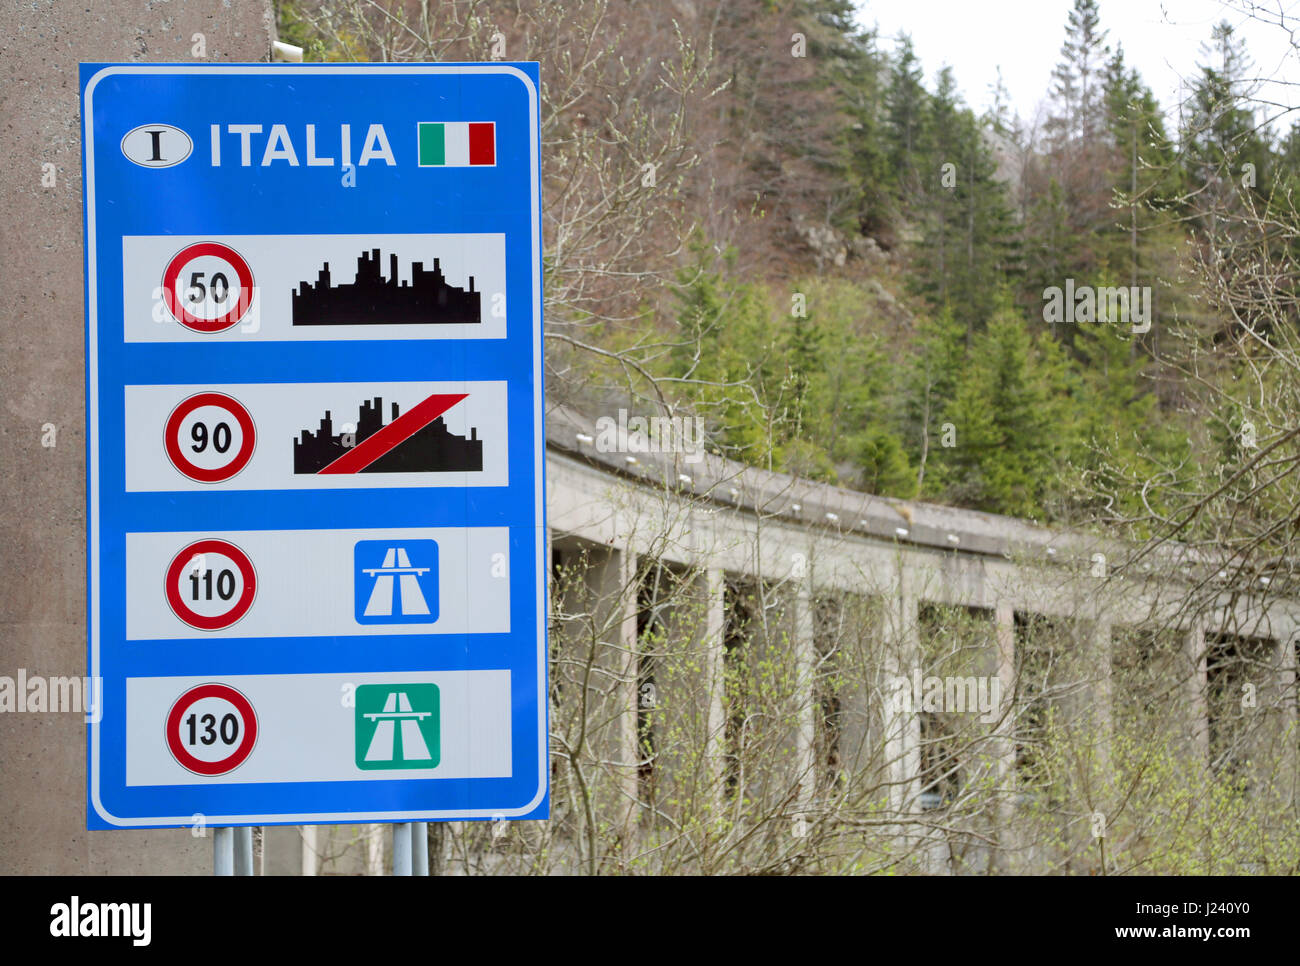 road sign at the italian border with indications of the speed limits stock photo 139000820 alamy. Black Bedroom Furniture Sets. Home Design Ideas